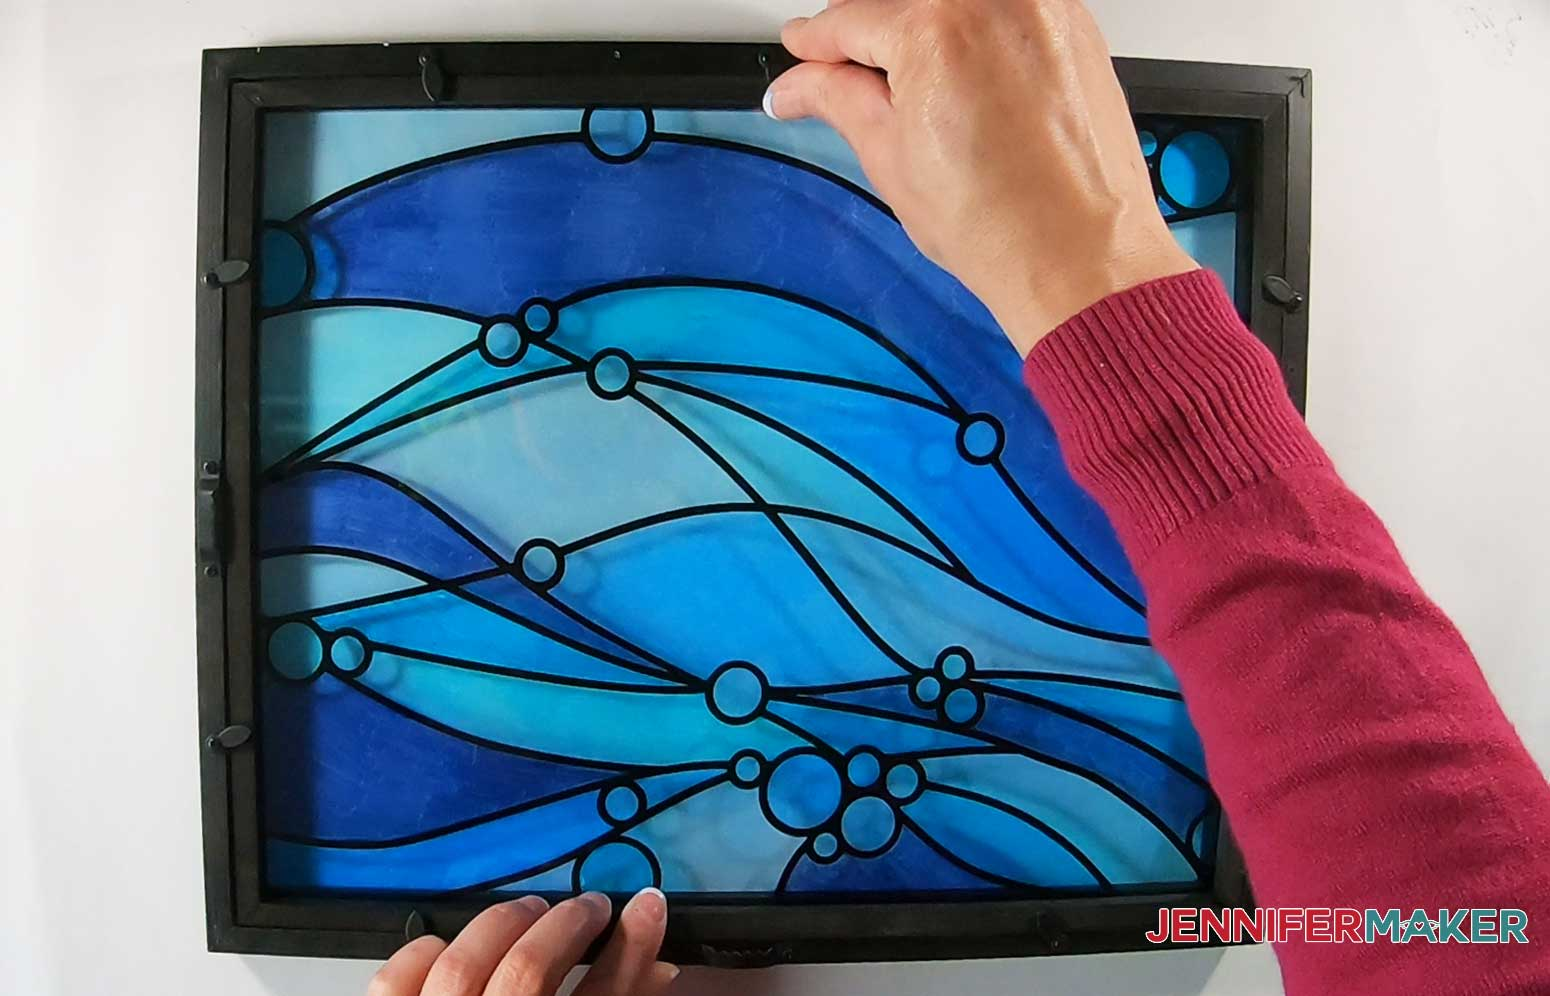 Assemble the faux stained glass frame by closing the tabs